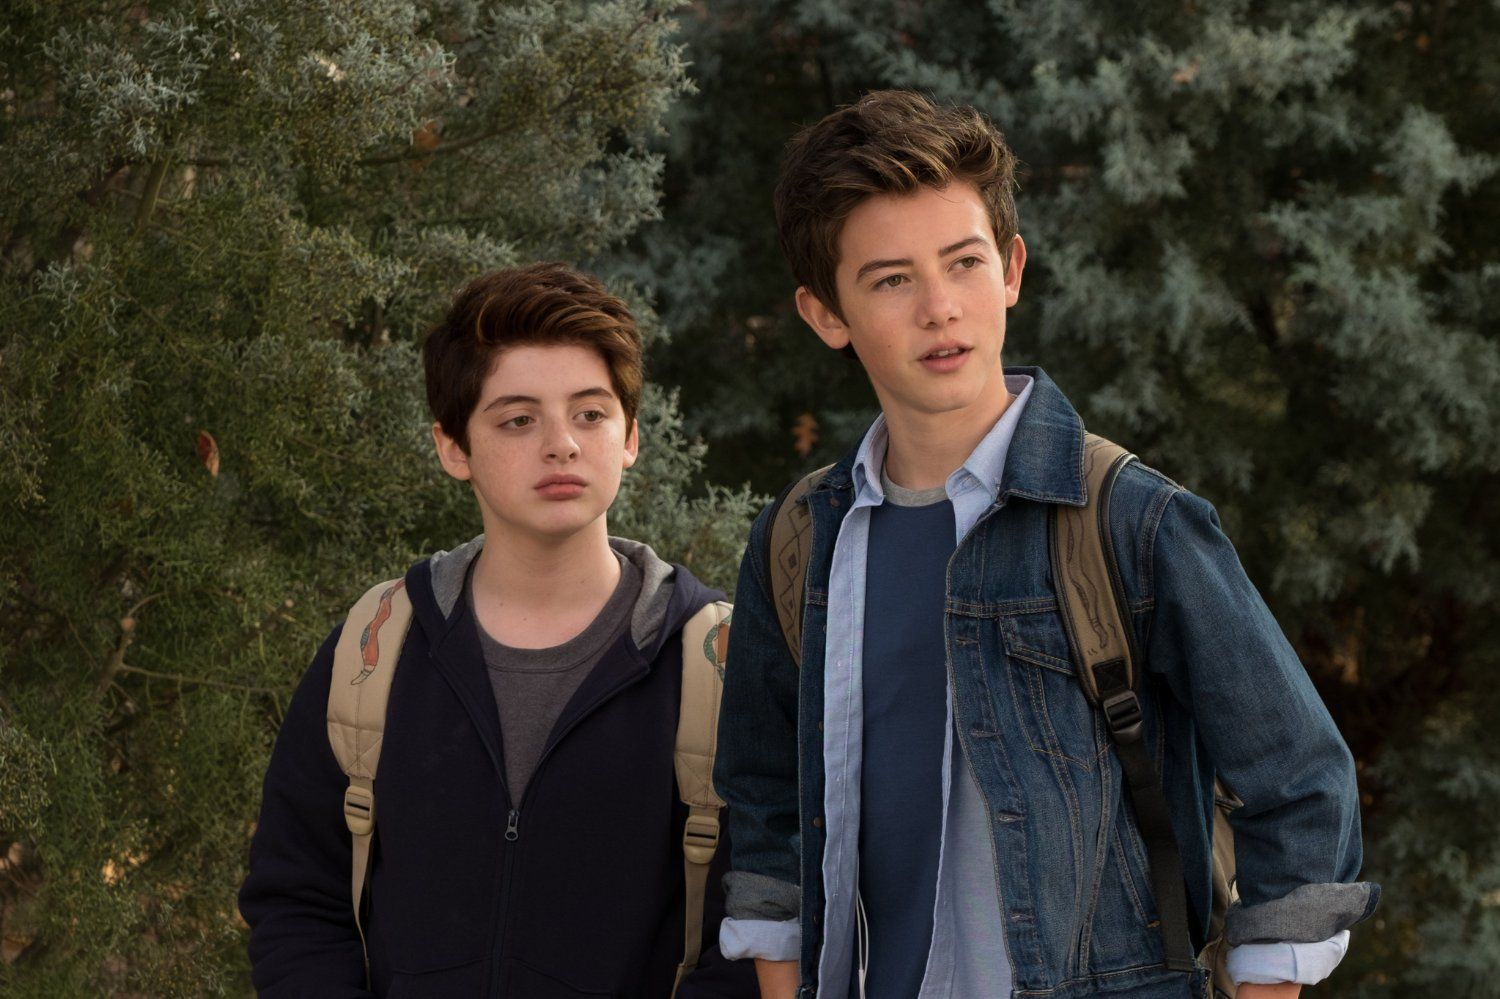 griffin gluck and thomas barbusca in middle school the worst griffin gluck and thomas barbusca in middle school the worst years of my life